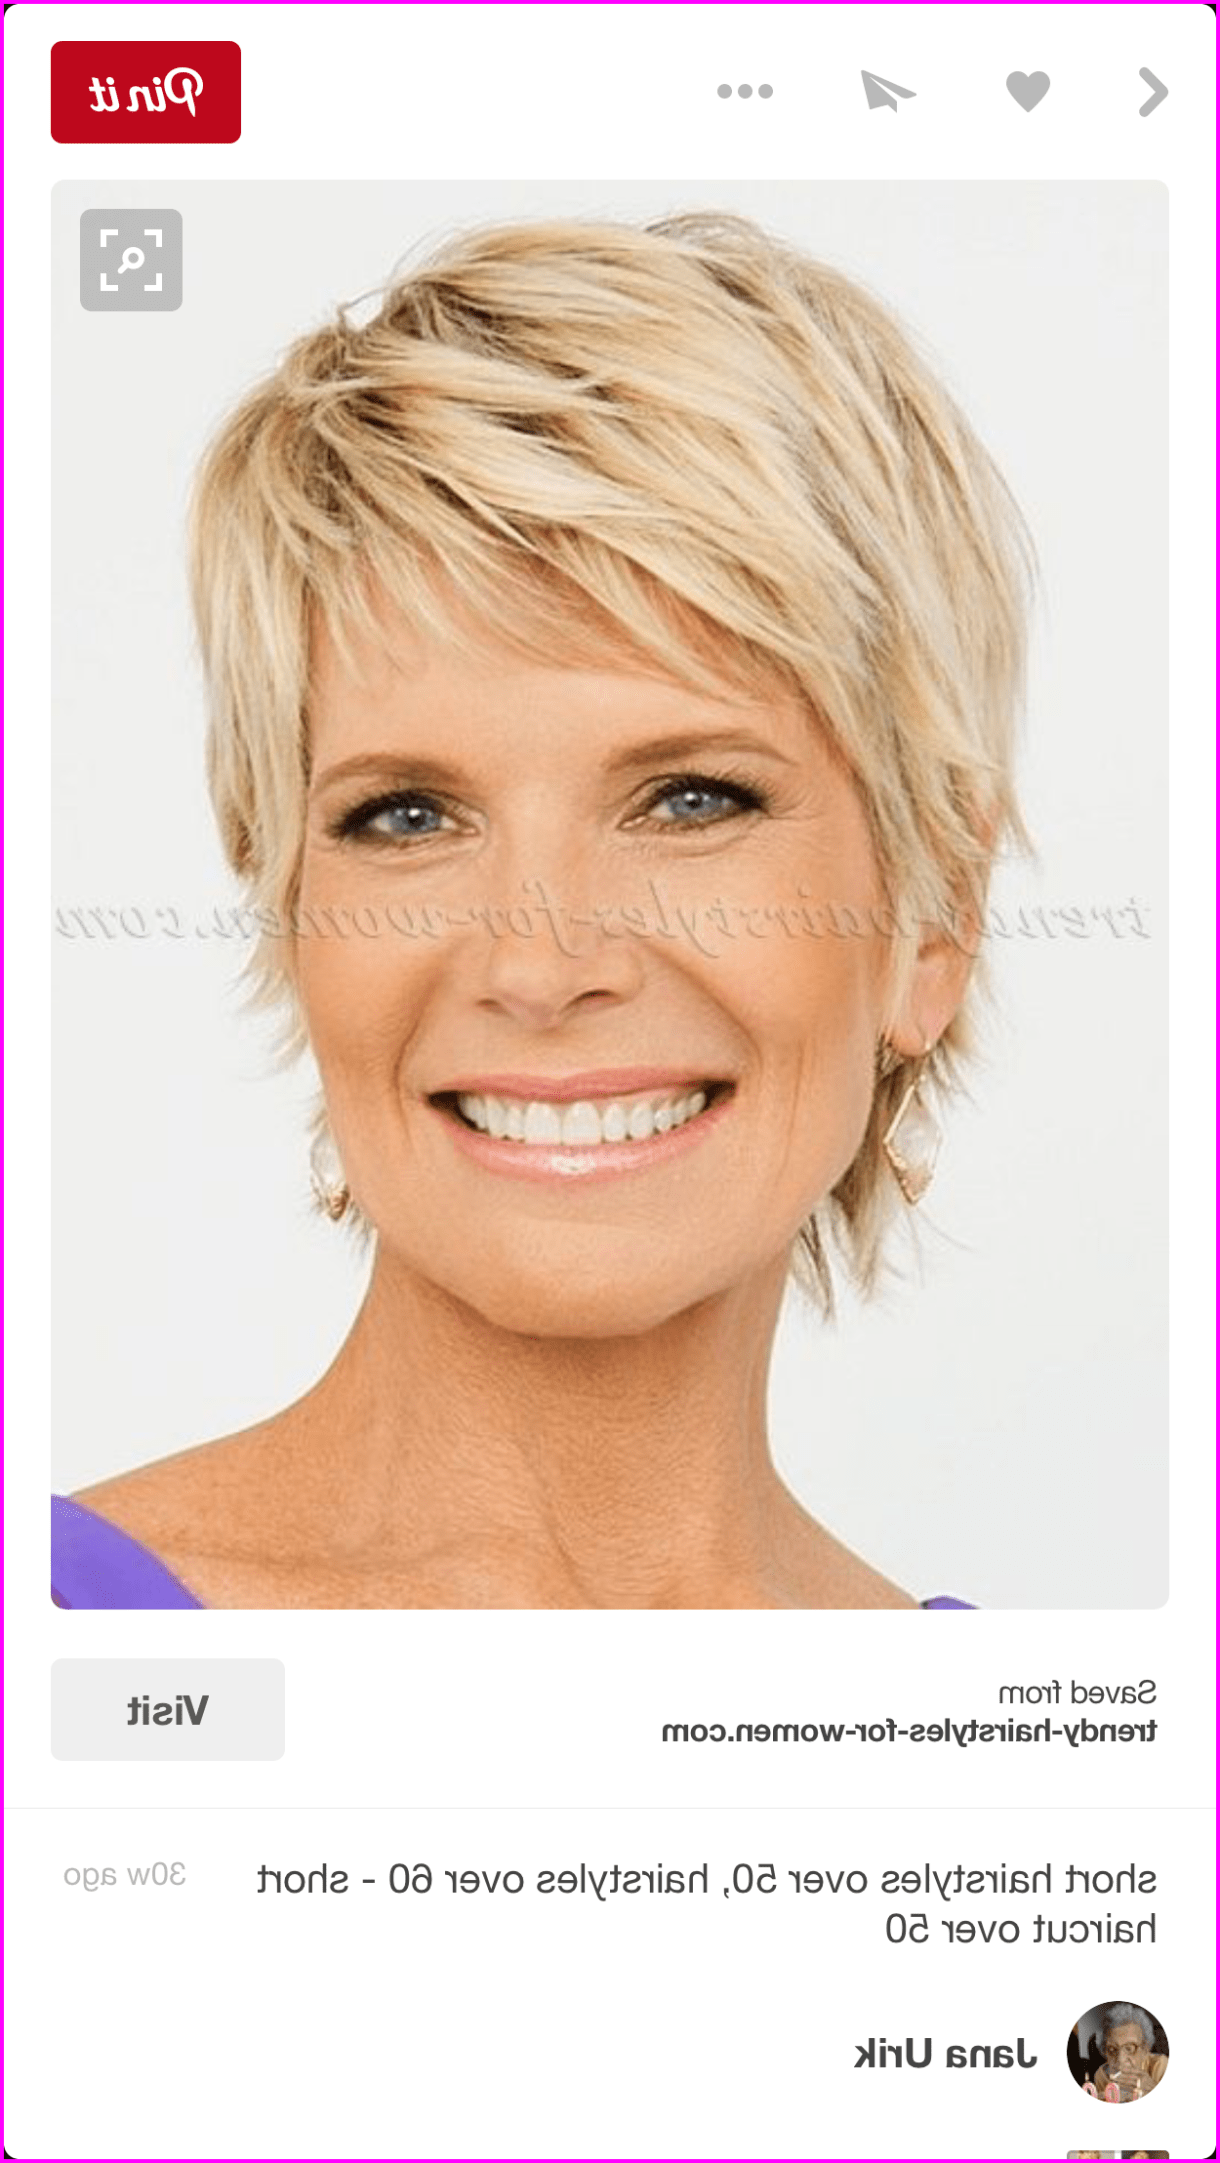 Edgy Short Hairstyles For Women Over 50 In 2020 Short Hairstyles For Thick Hair Thick Hair Styles Short Hairstyles For Women